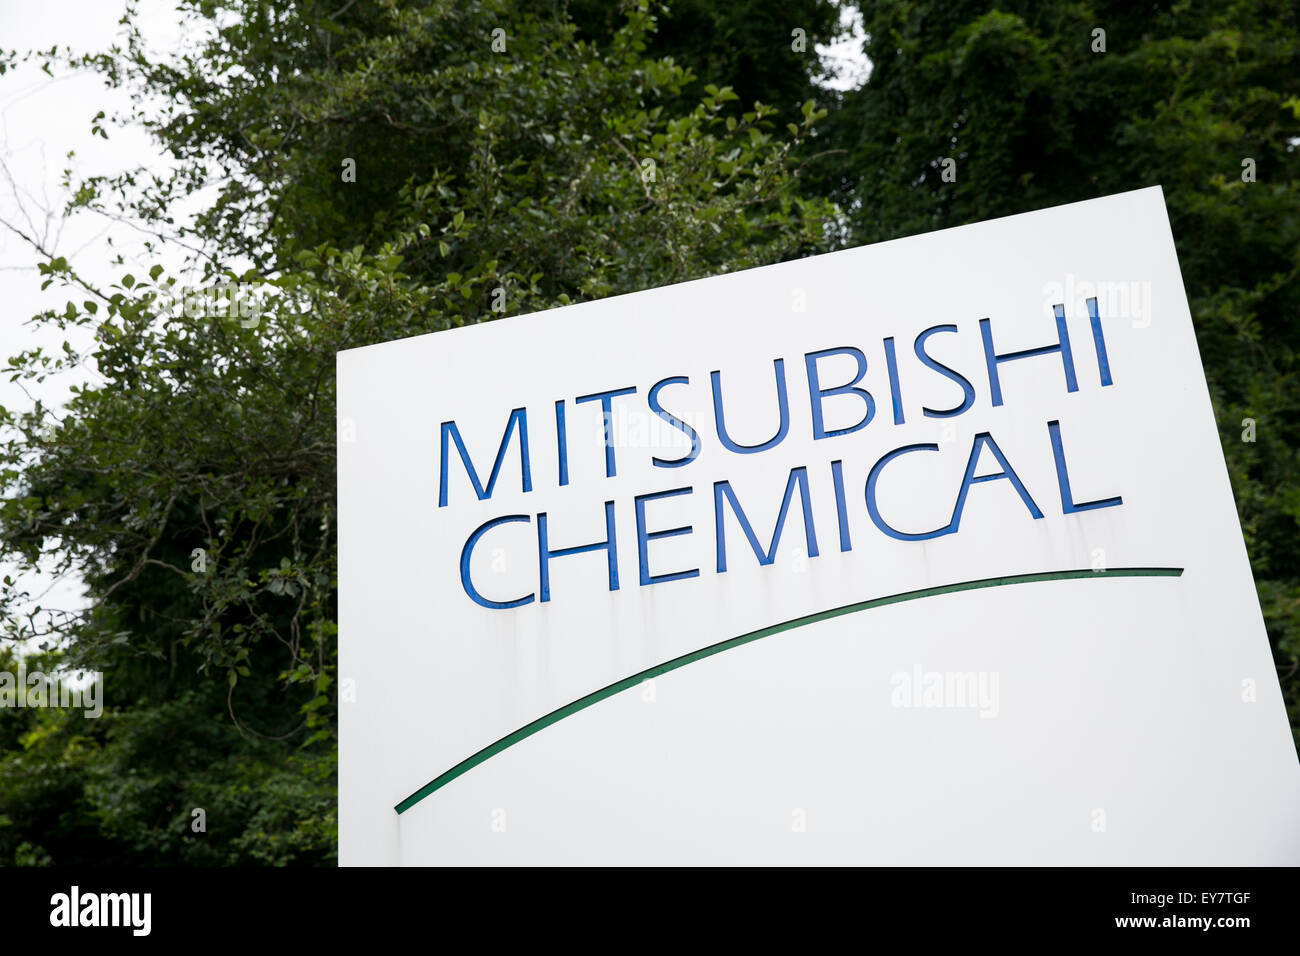 A logo sign outside of a facility occupied by Mitsubishi Chemical in Chesapeake, Virginia on July 18, 2015. - Stock Image